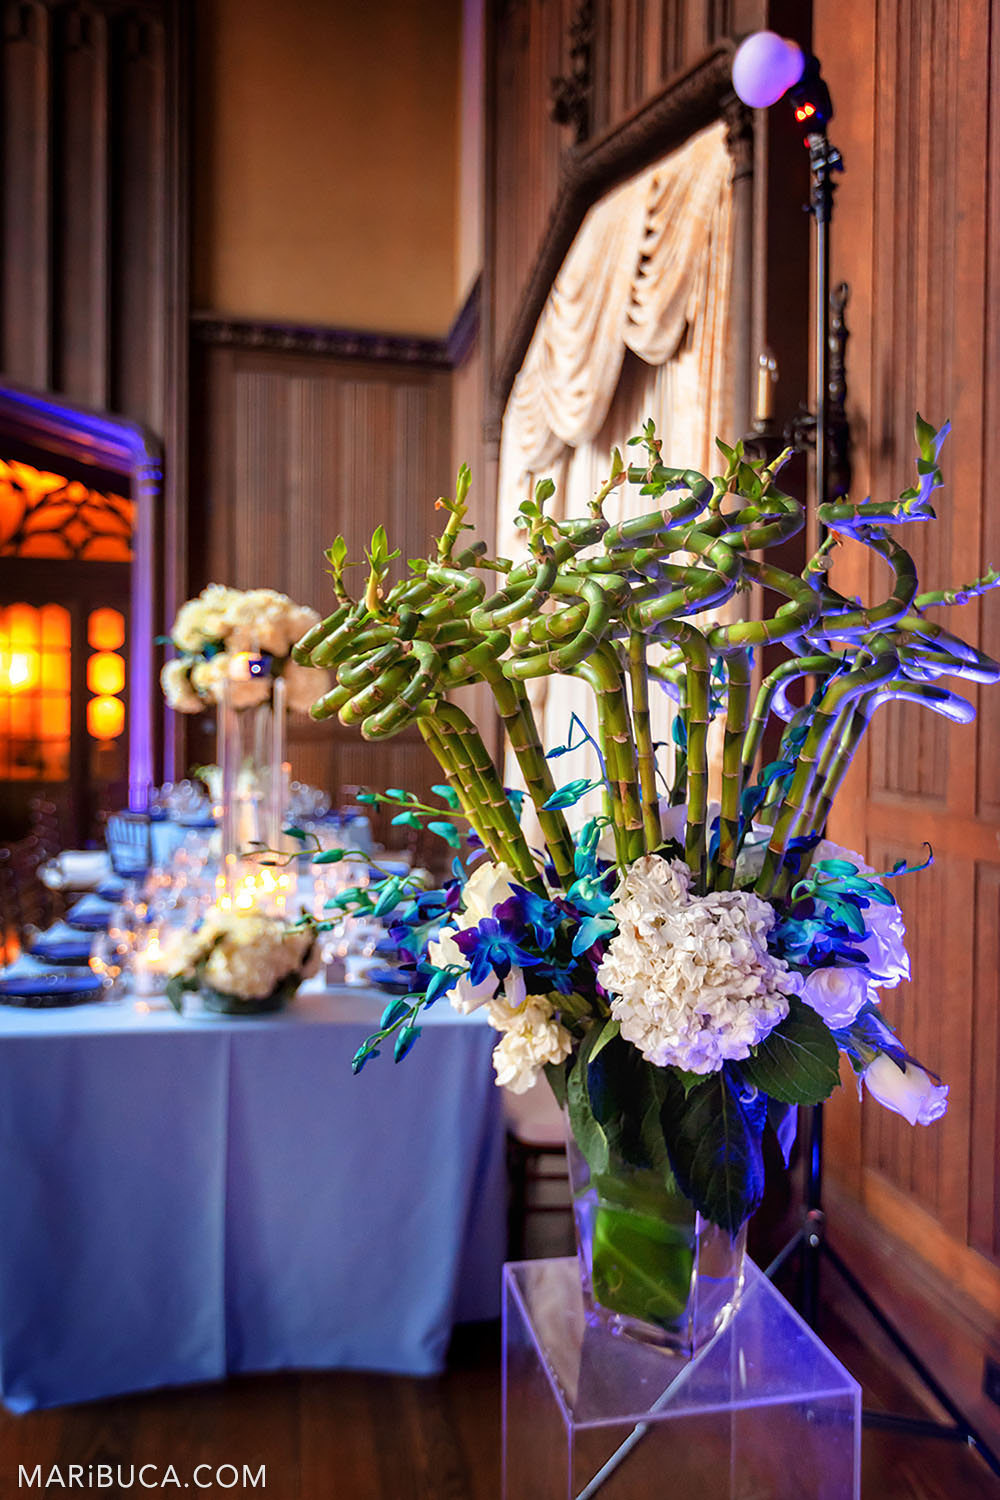 Decoration in the Great Hall, Kohl Mansion such as bouquet flower, burning candles and light blue table in the background with beautiful decorations.